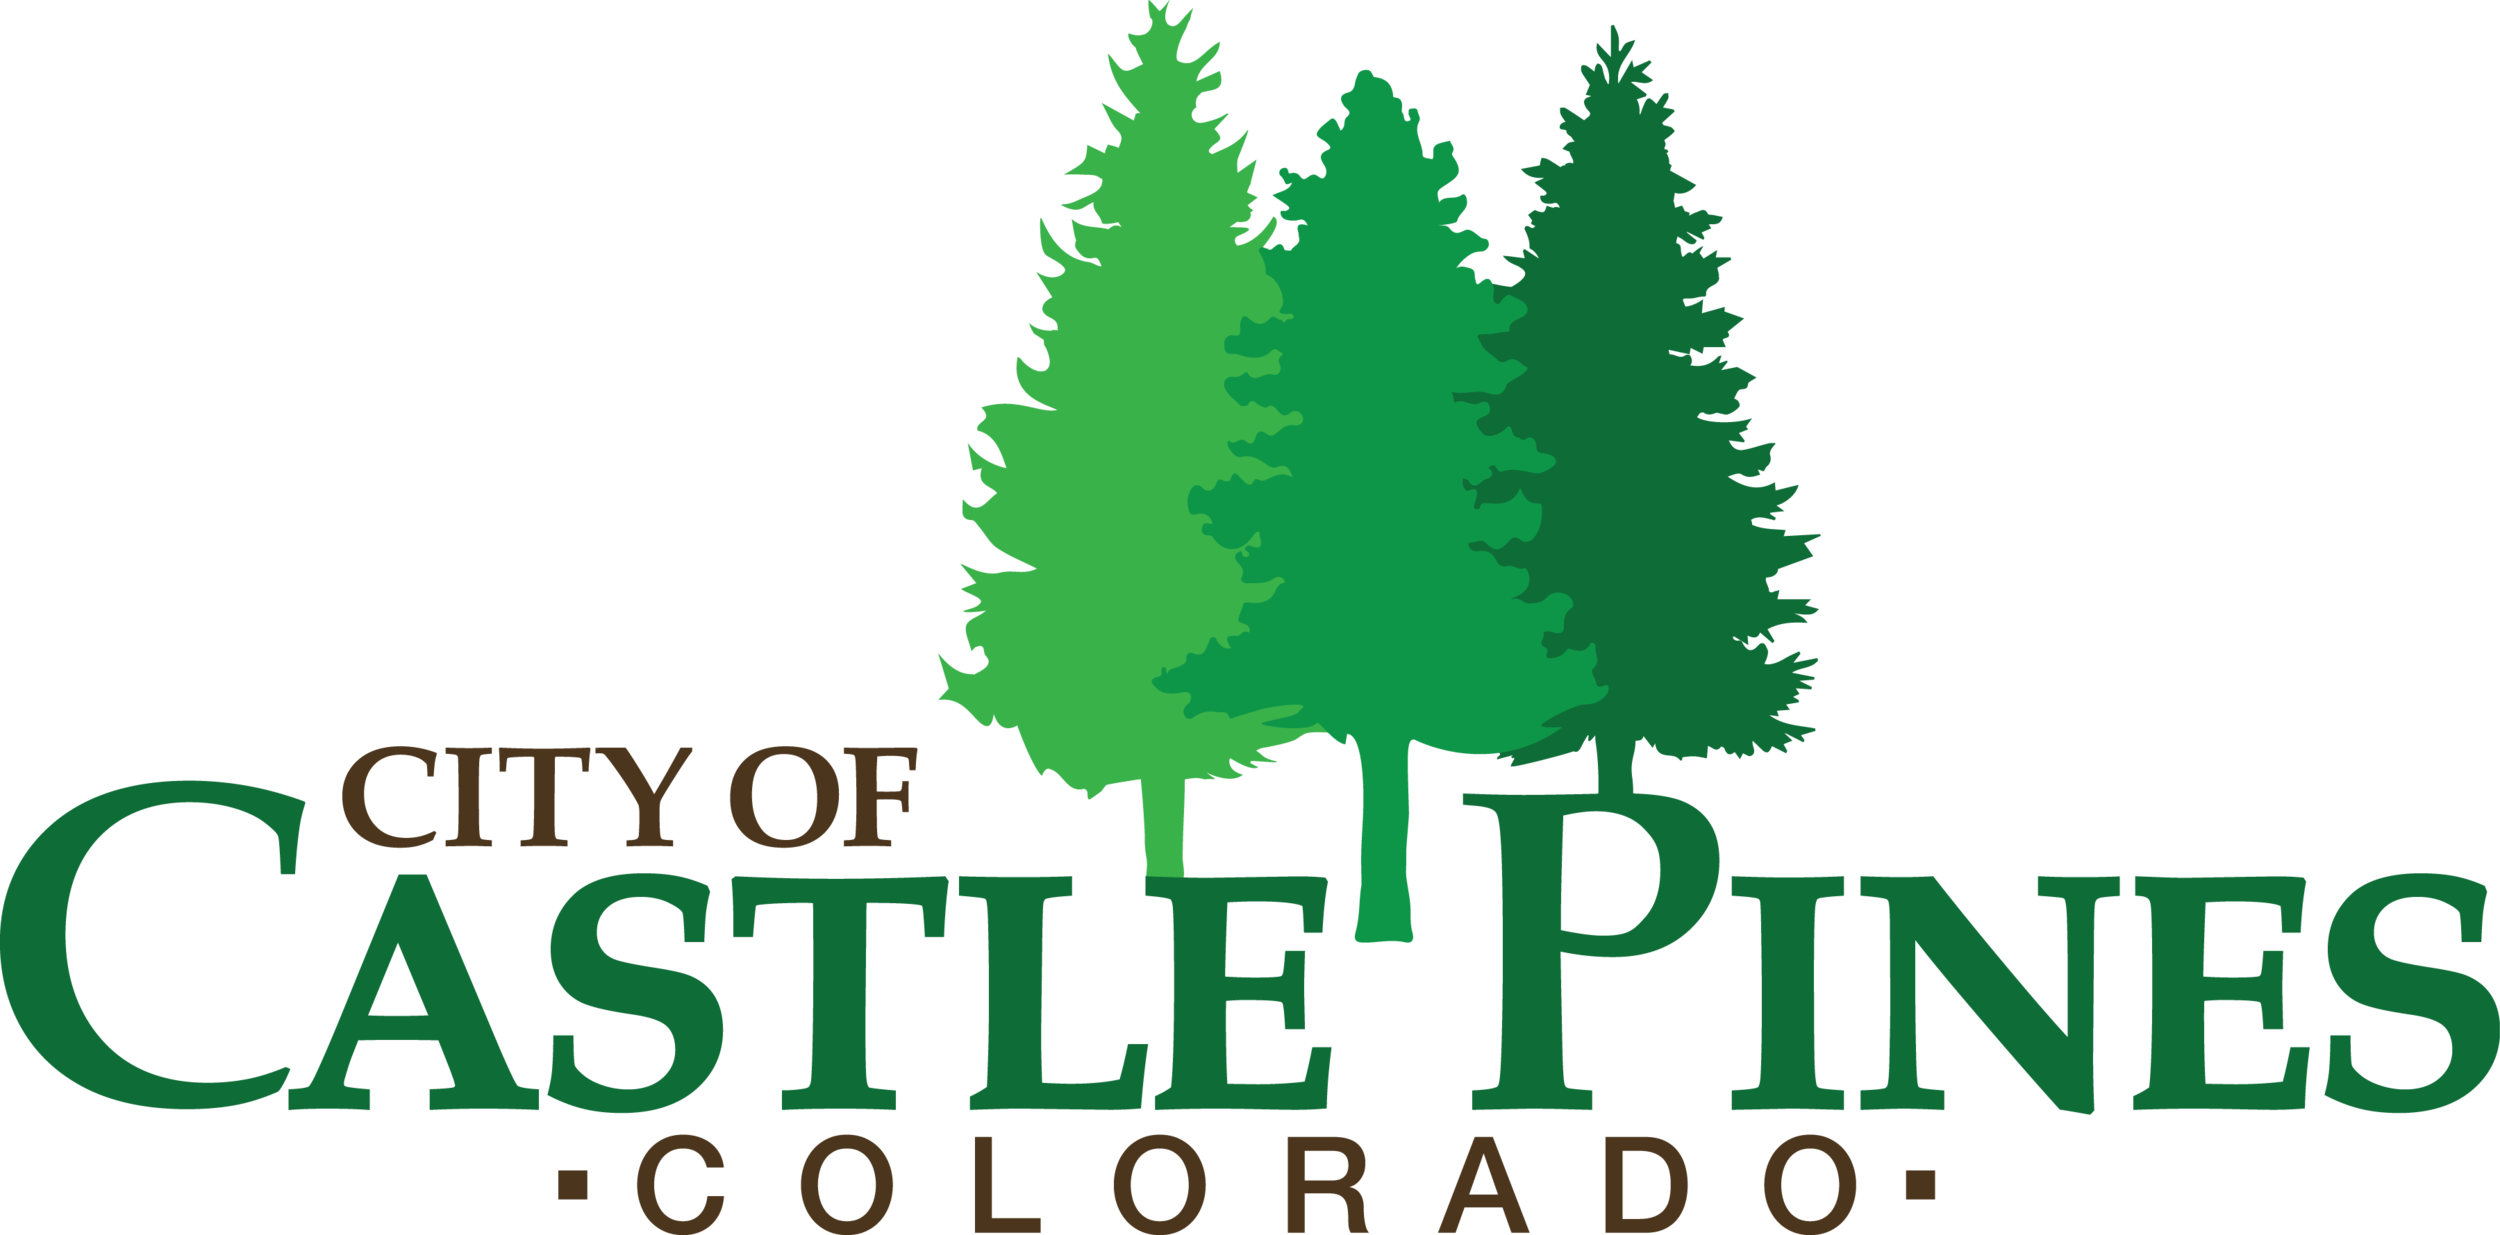 Castle Pines logo.png